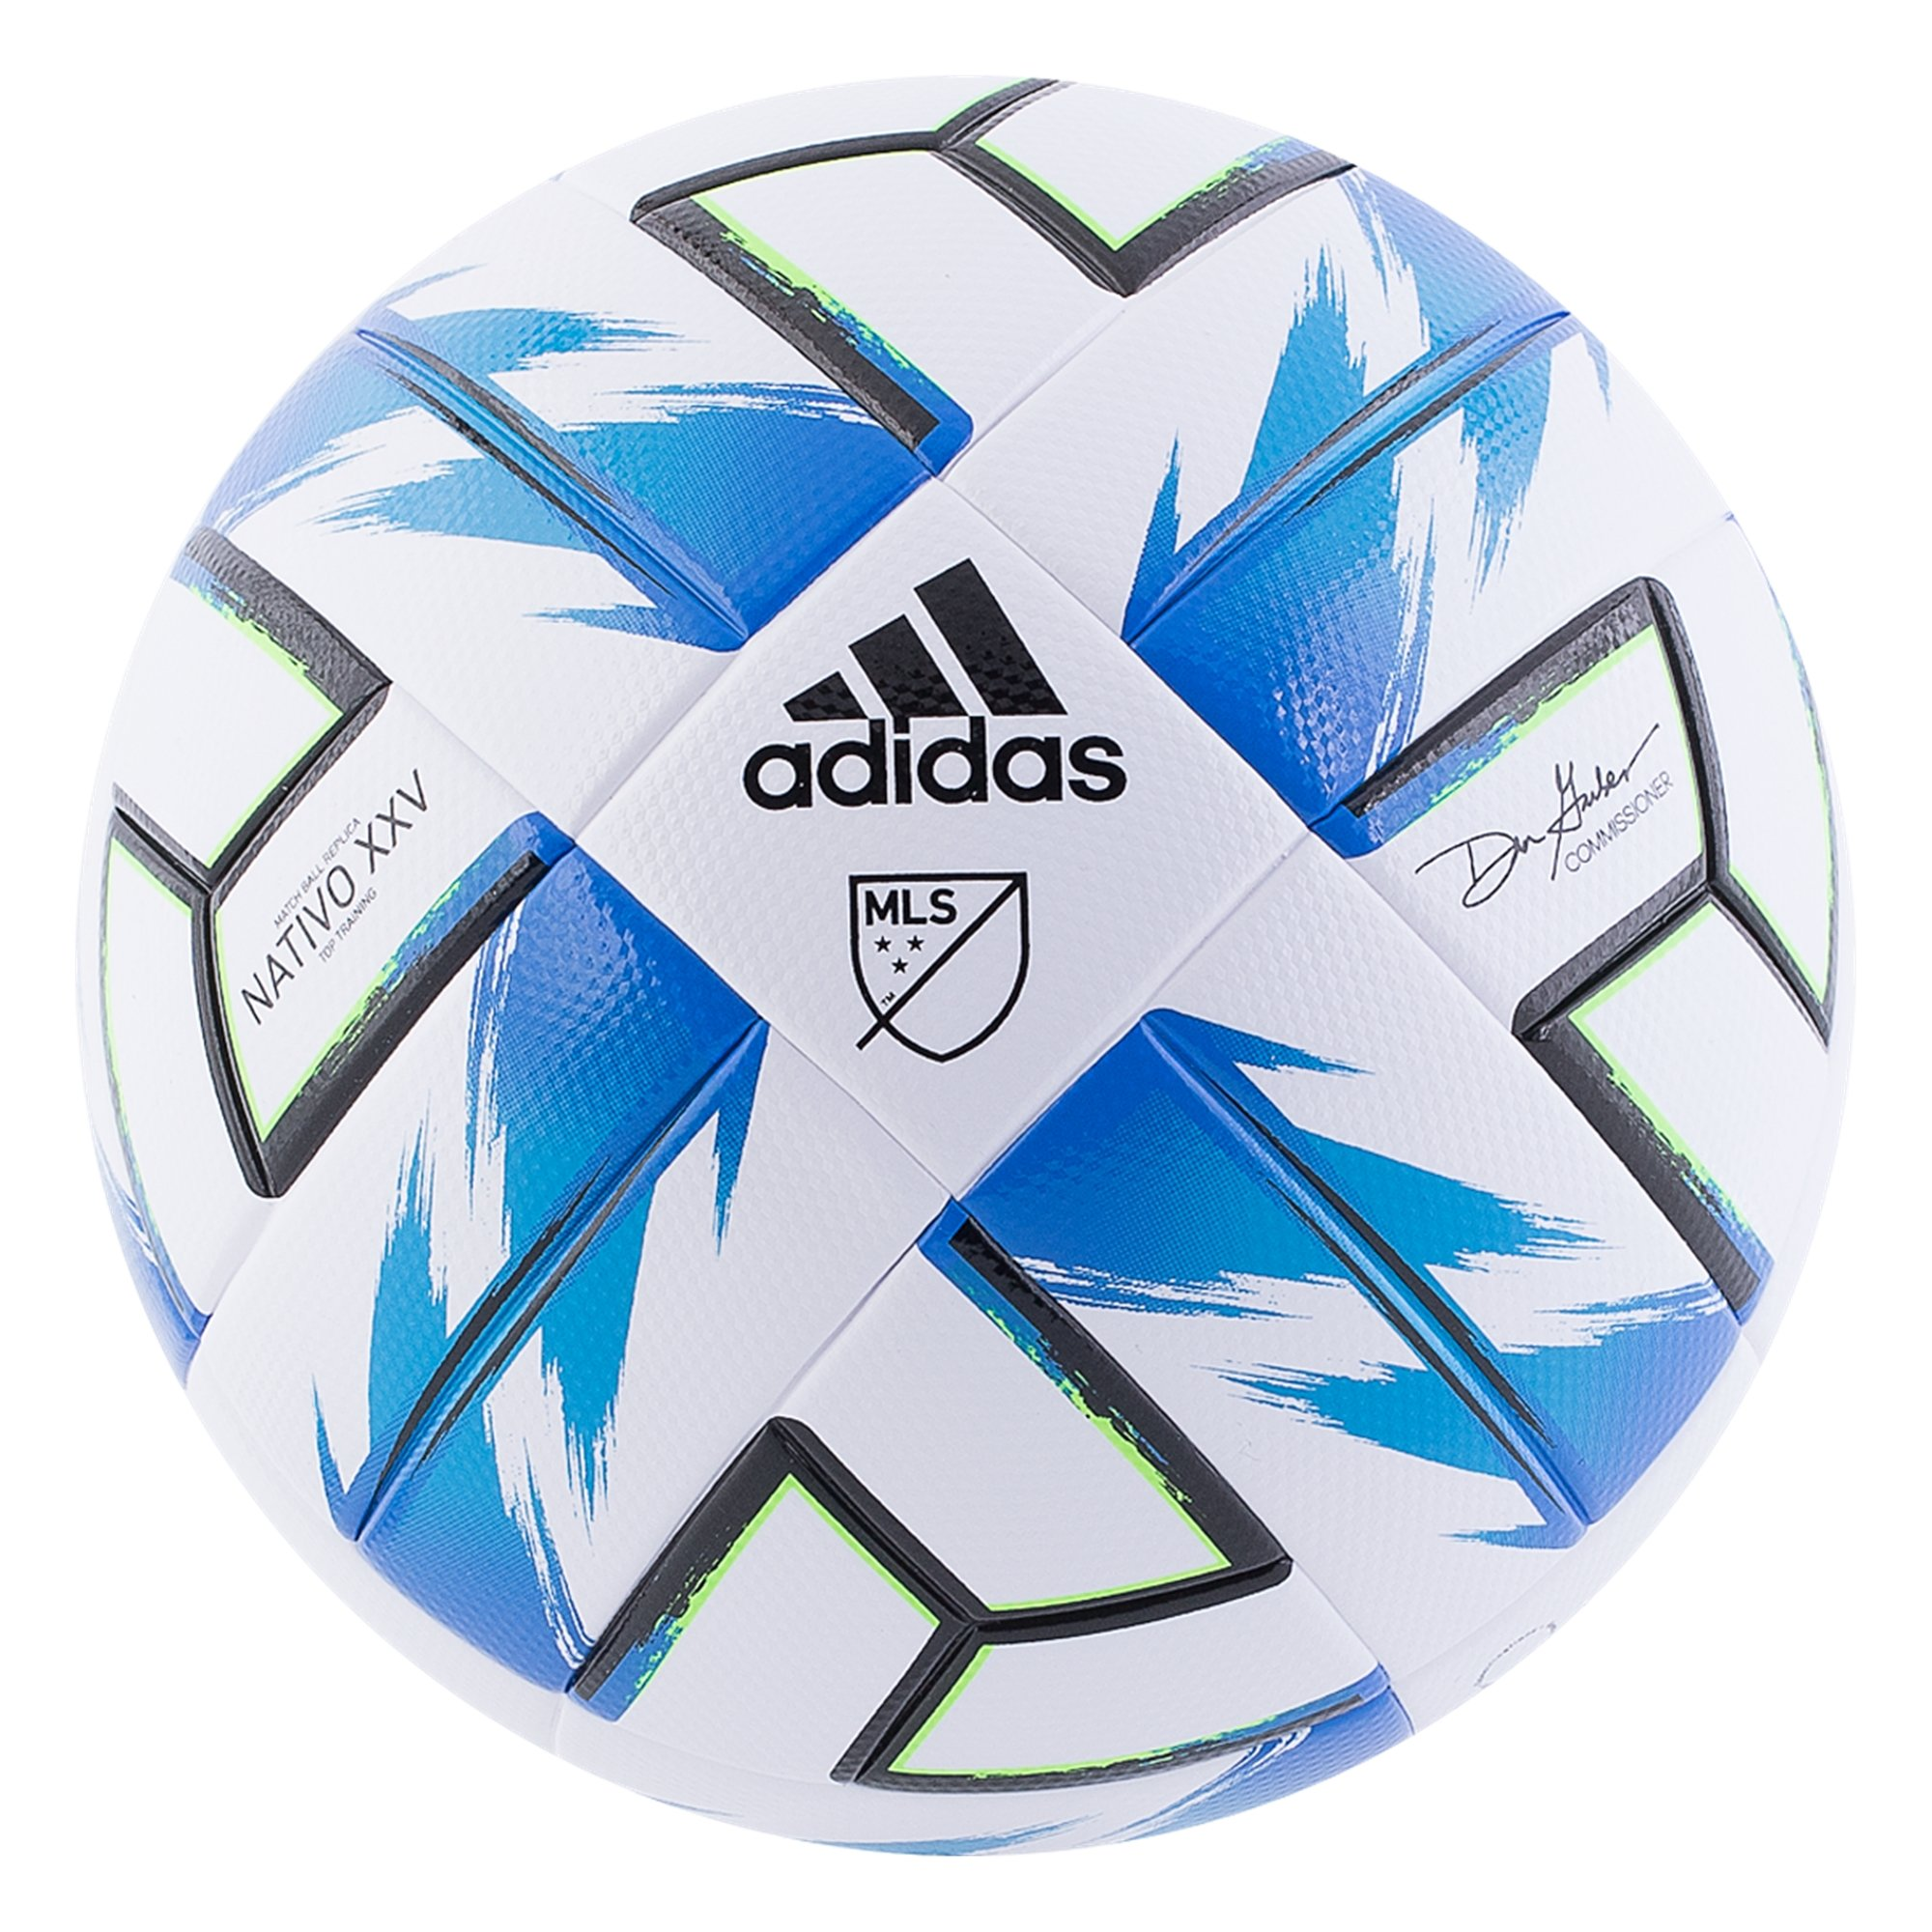 adidas MLS 2020 League NFHS Soccer Ball